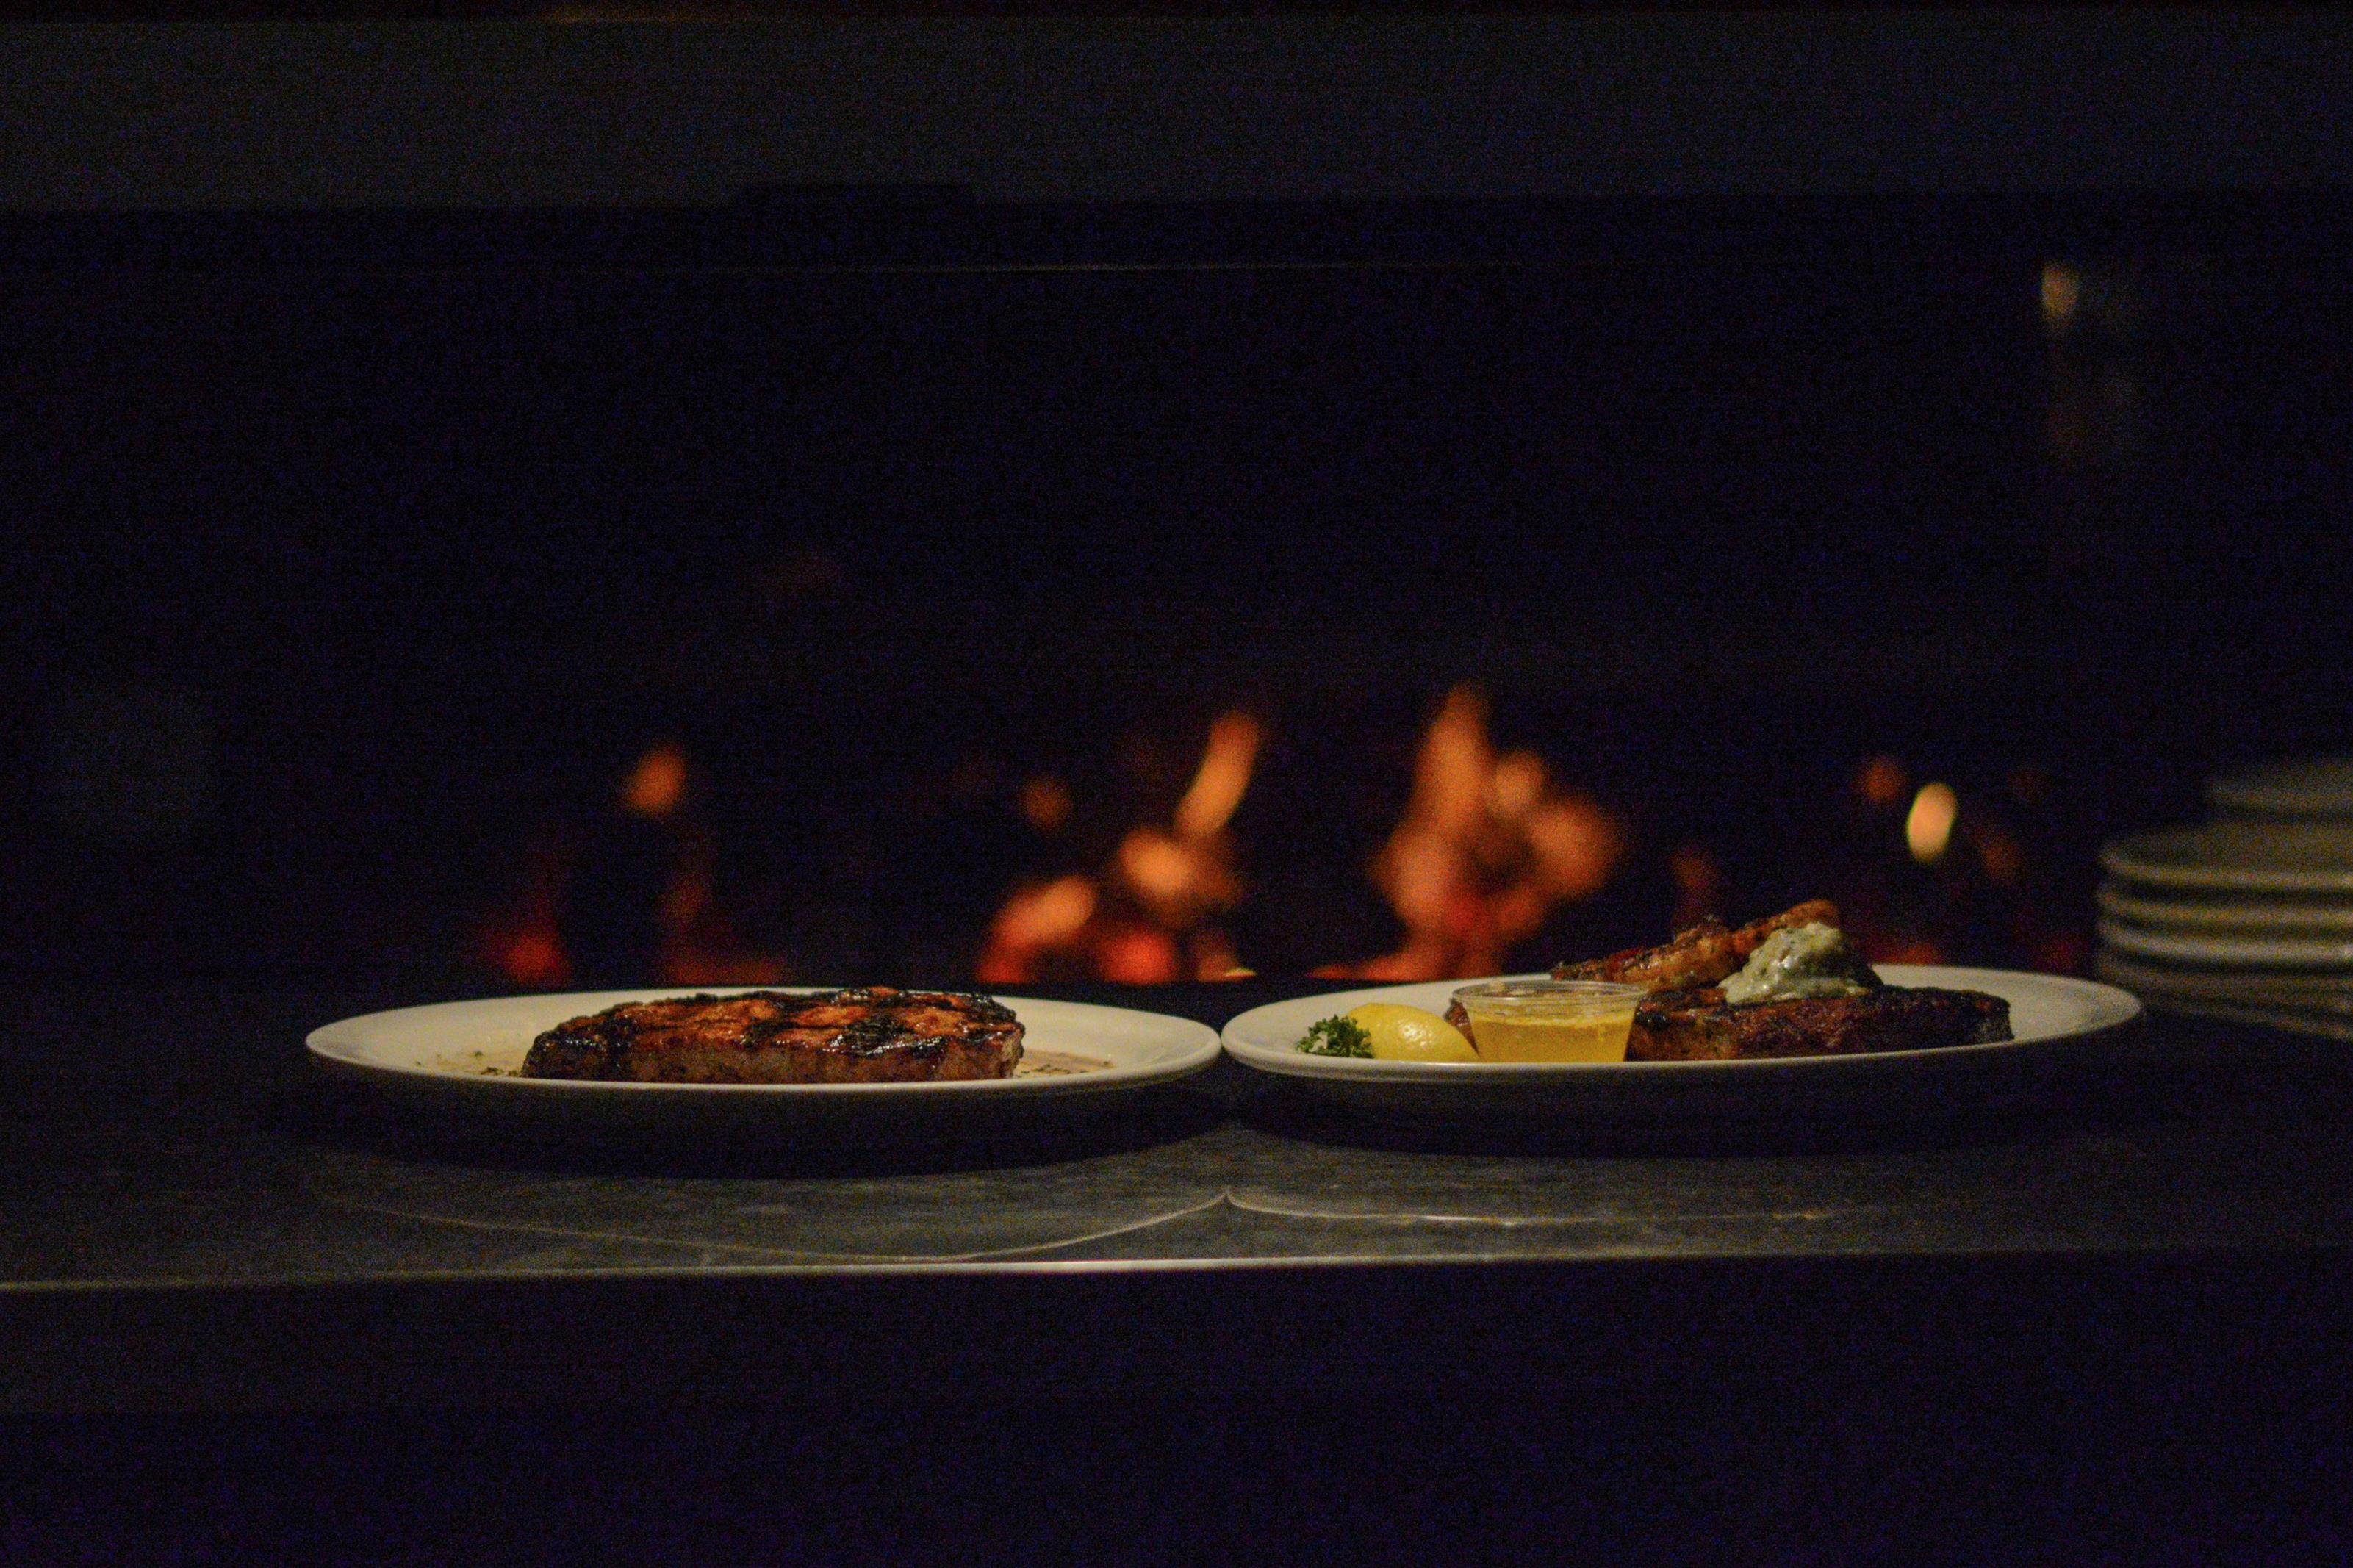 two plates of grilled steaks sitting in front of the open flame grill. the steak on the right is topped with grilled shrimp